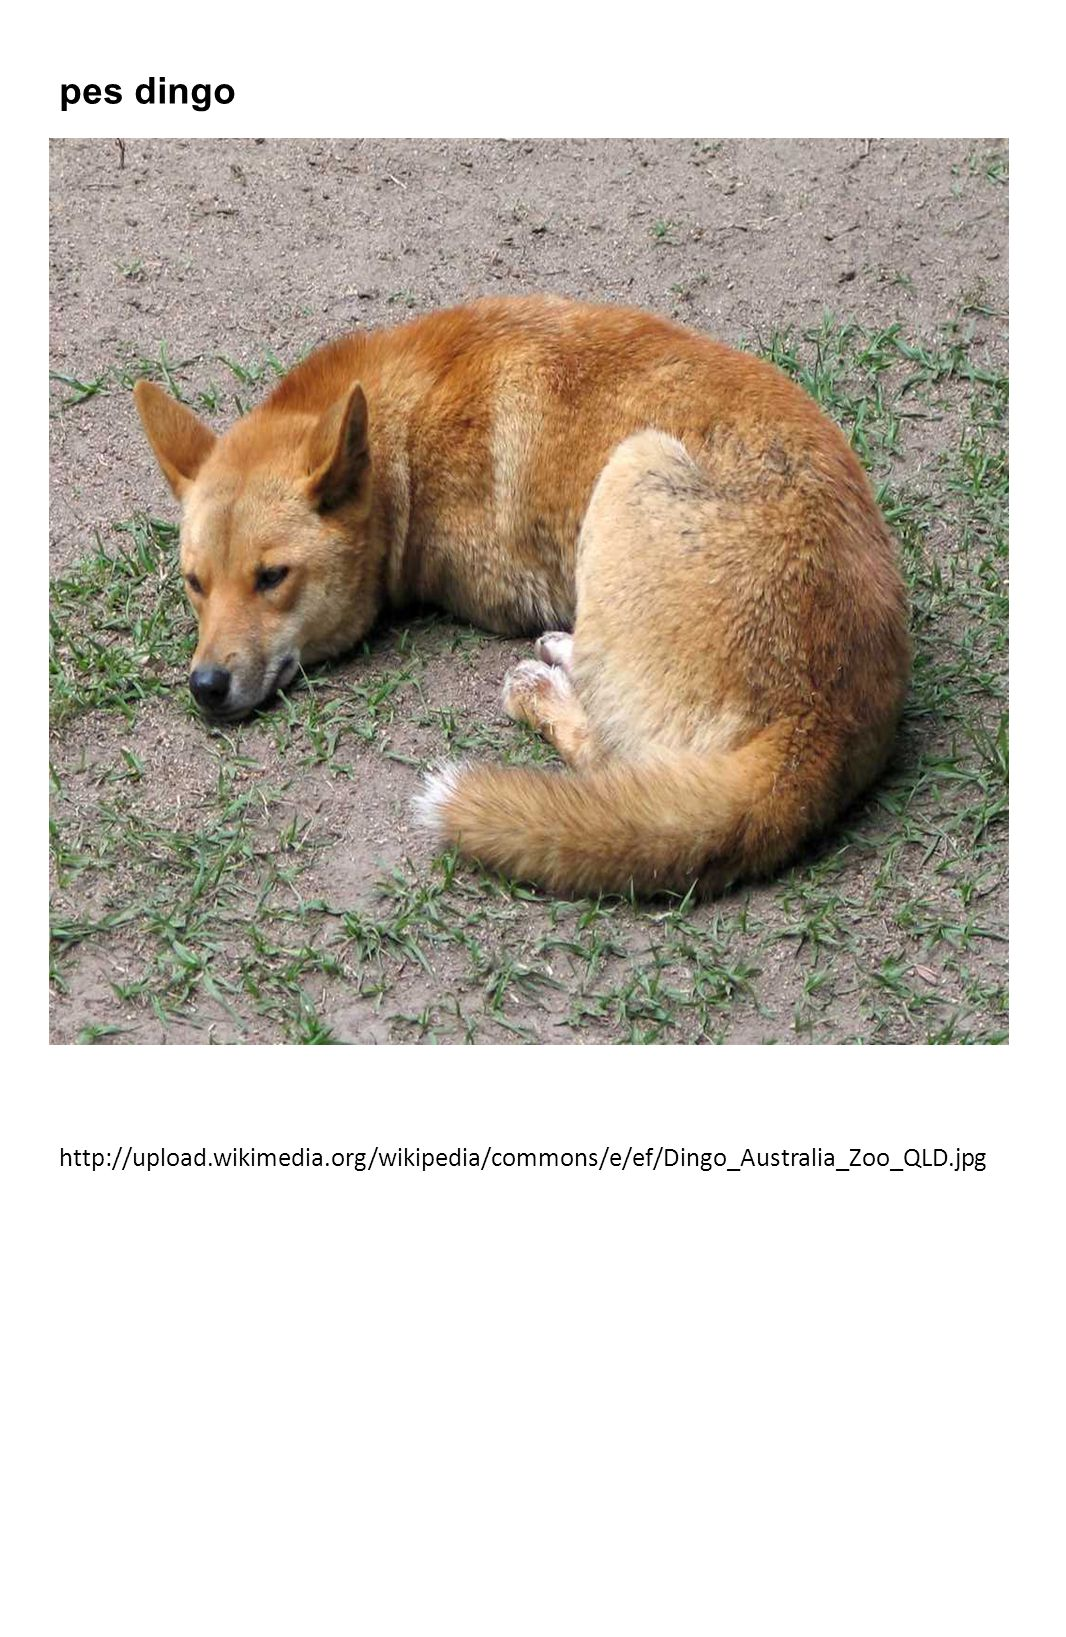 pes dingo http://upload.wikimedia.org/wikipedia/commons/e/ef/Dingo_Australia_Zoo_QLD.jpg